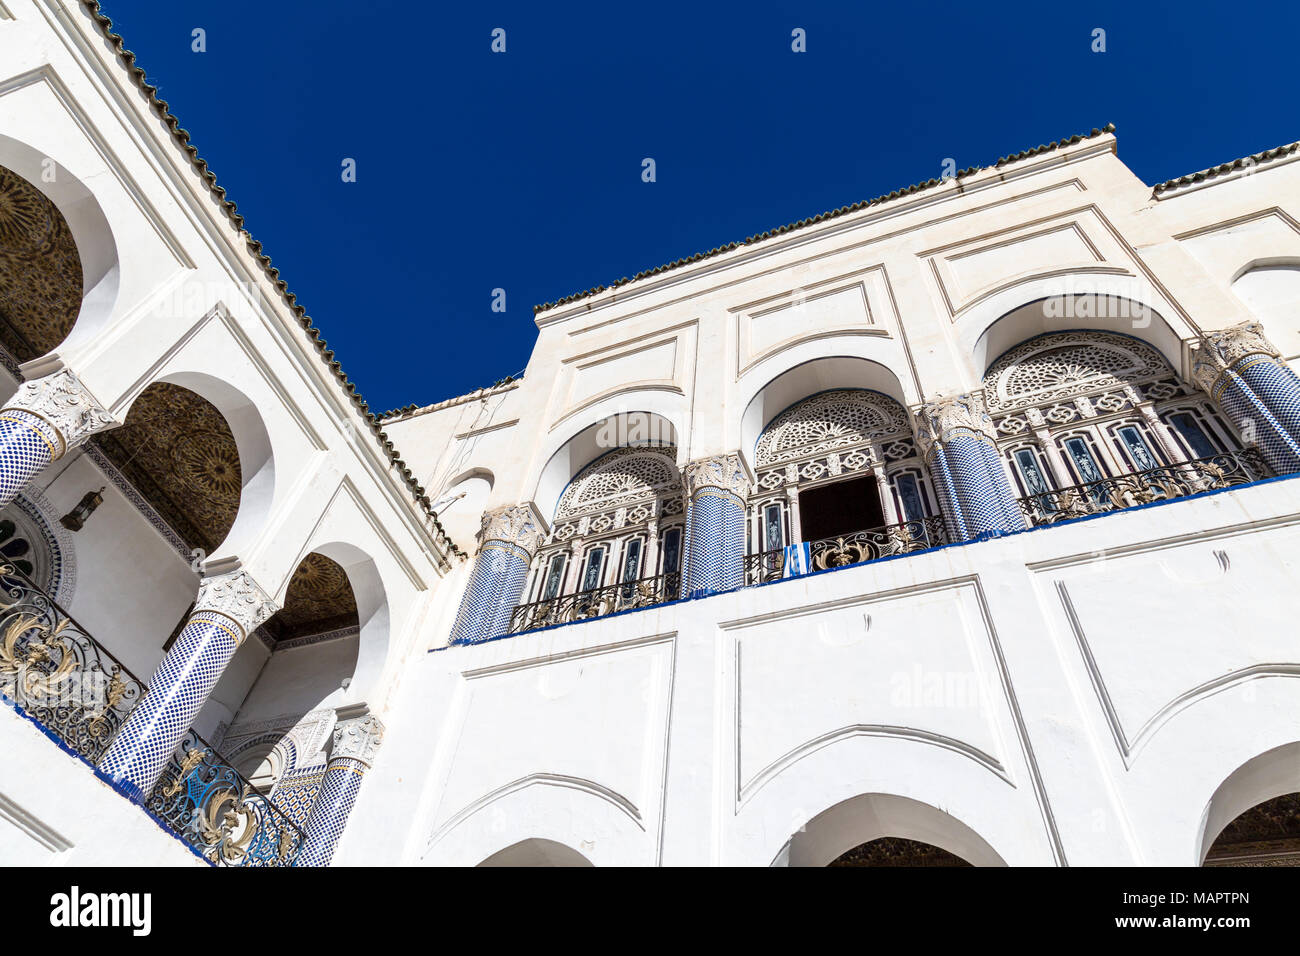 Detail of oriental architecture of a Moroccan palace, with arches, columns and mosaic tile decorations, Palais El Mokri, Fes, Morocco Stock Photo